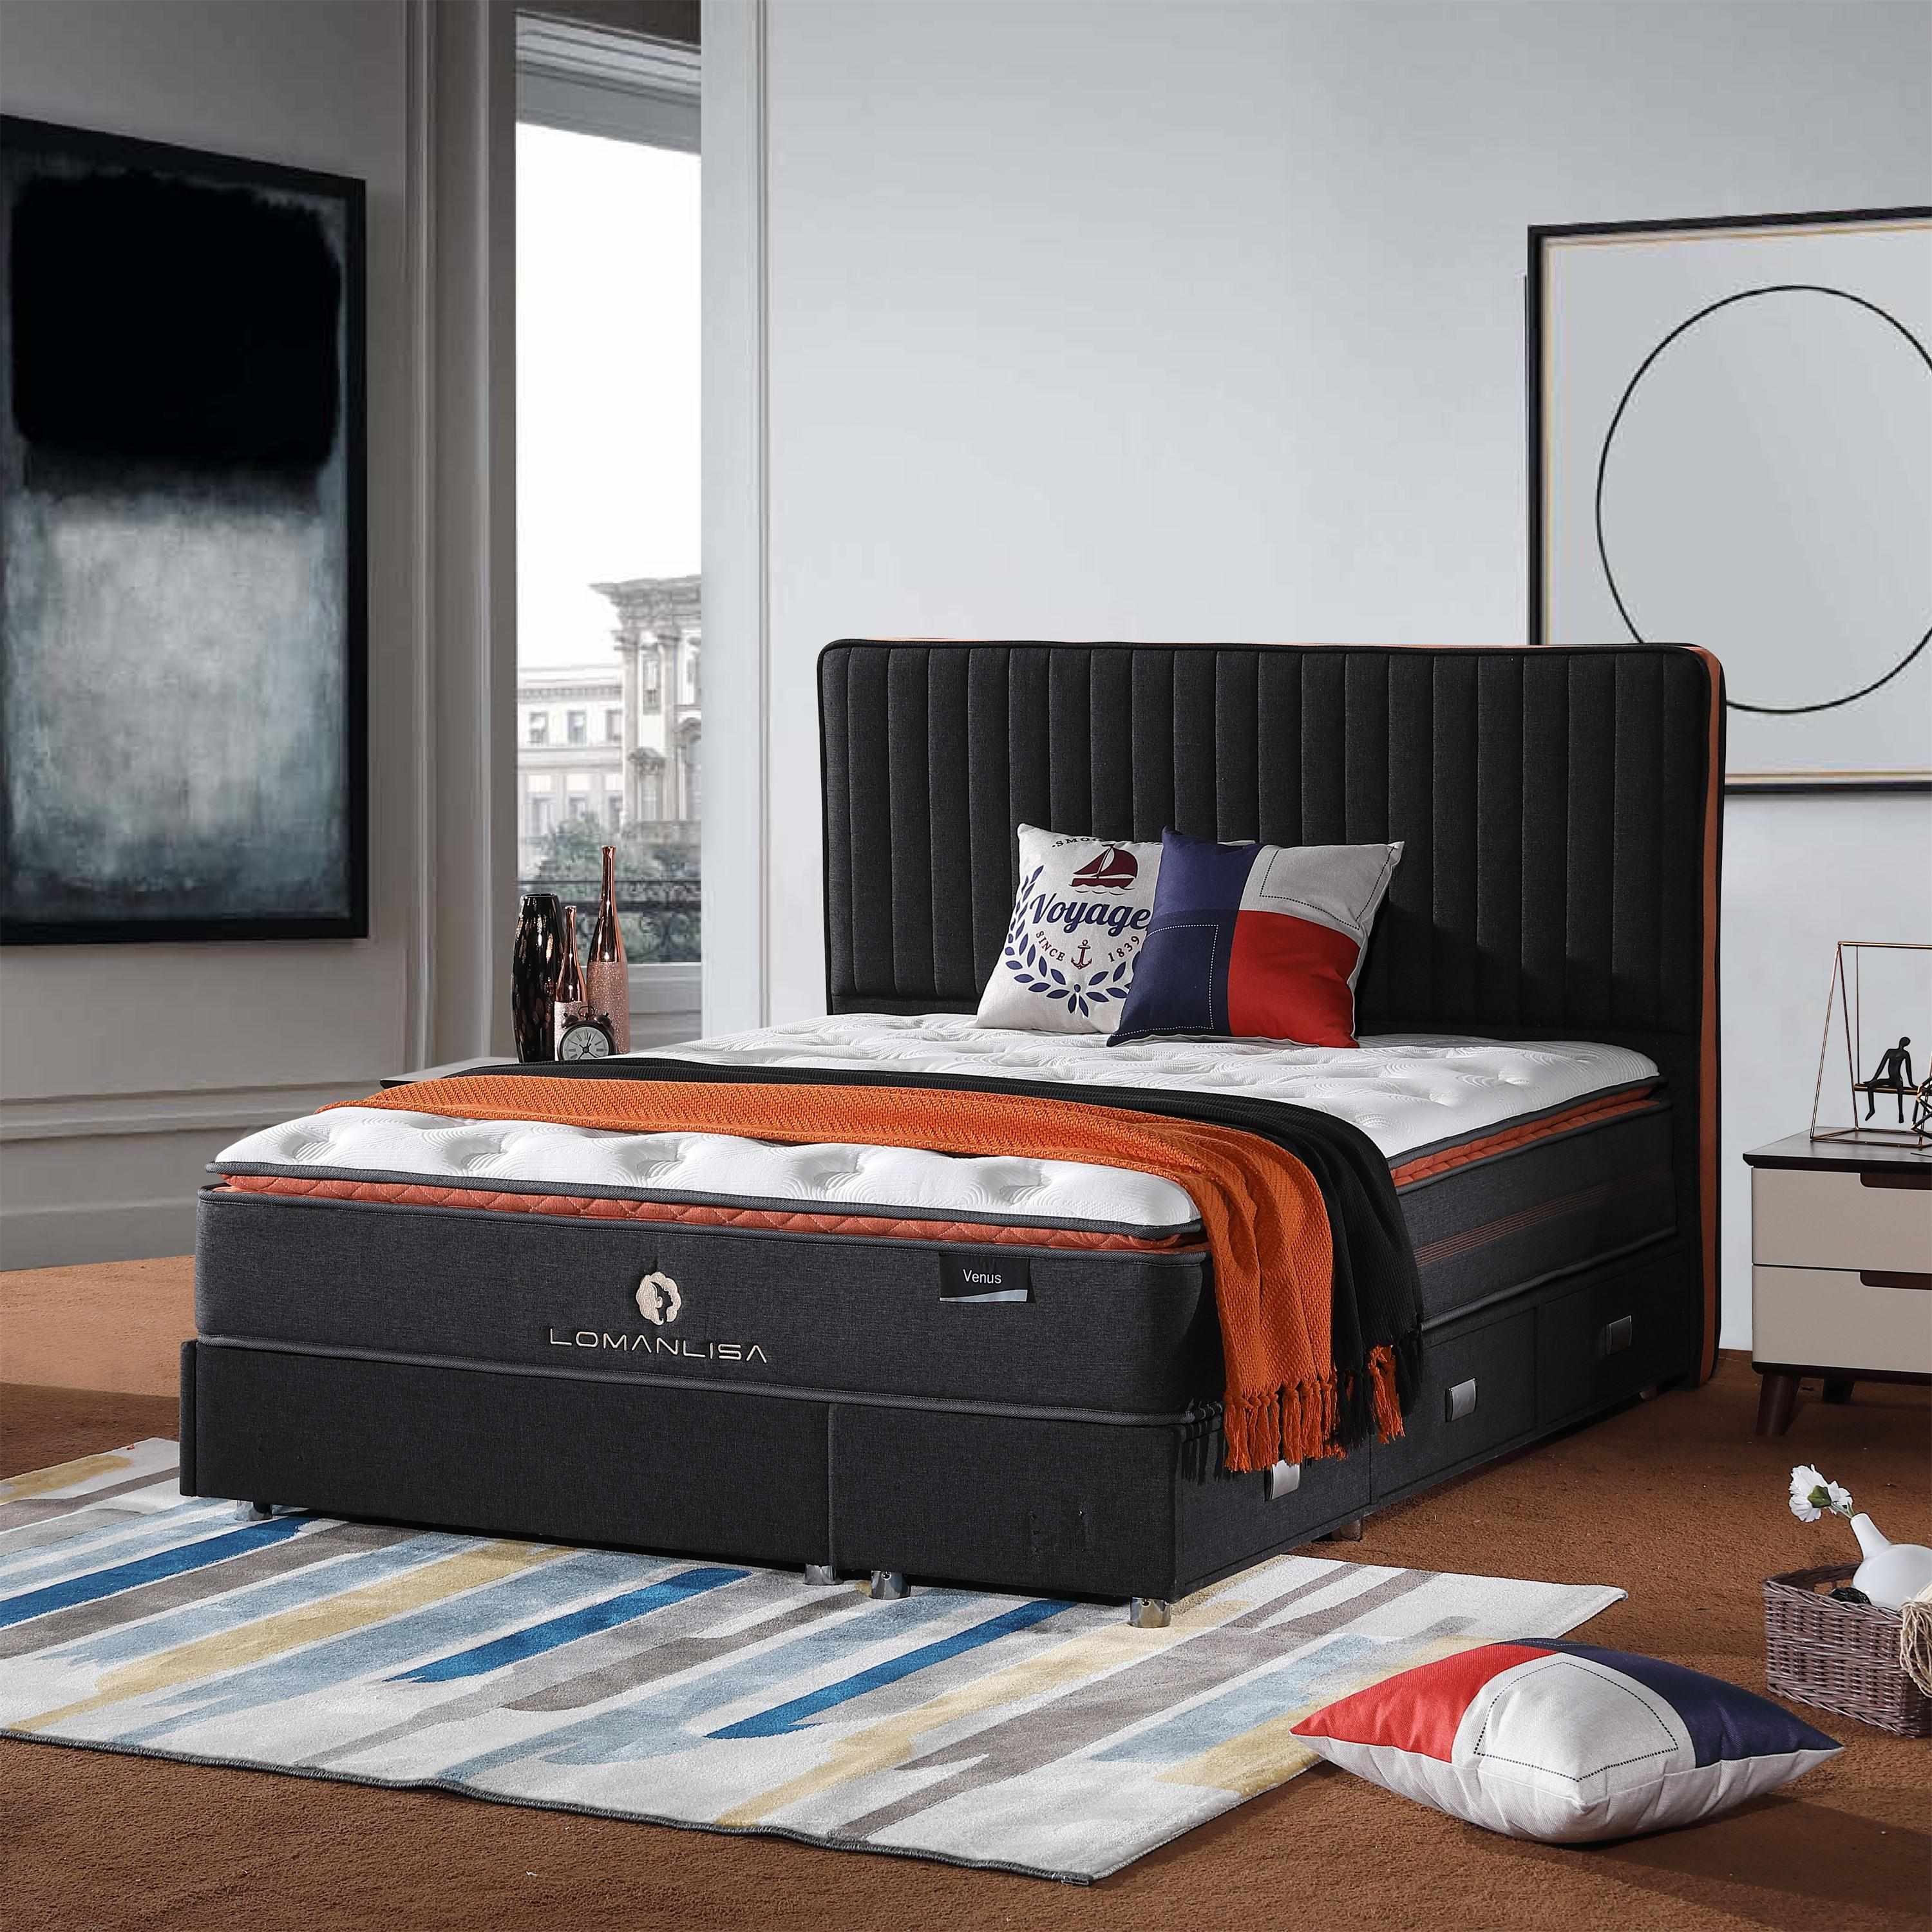 JLH turfted sprung mattress for sale for hotel-2